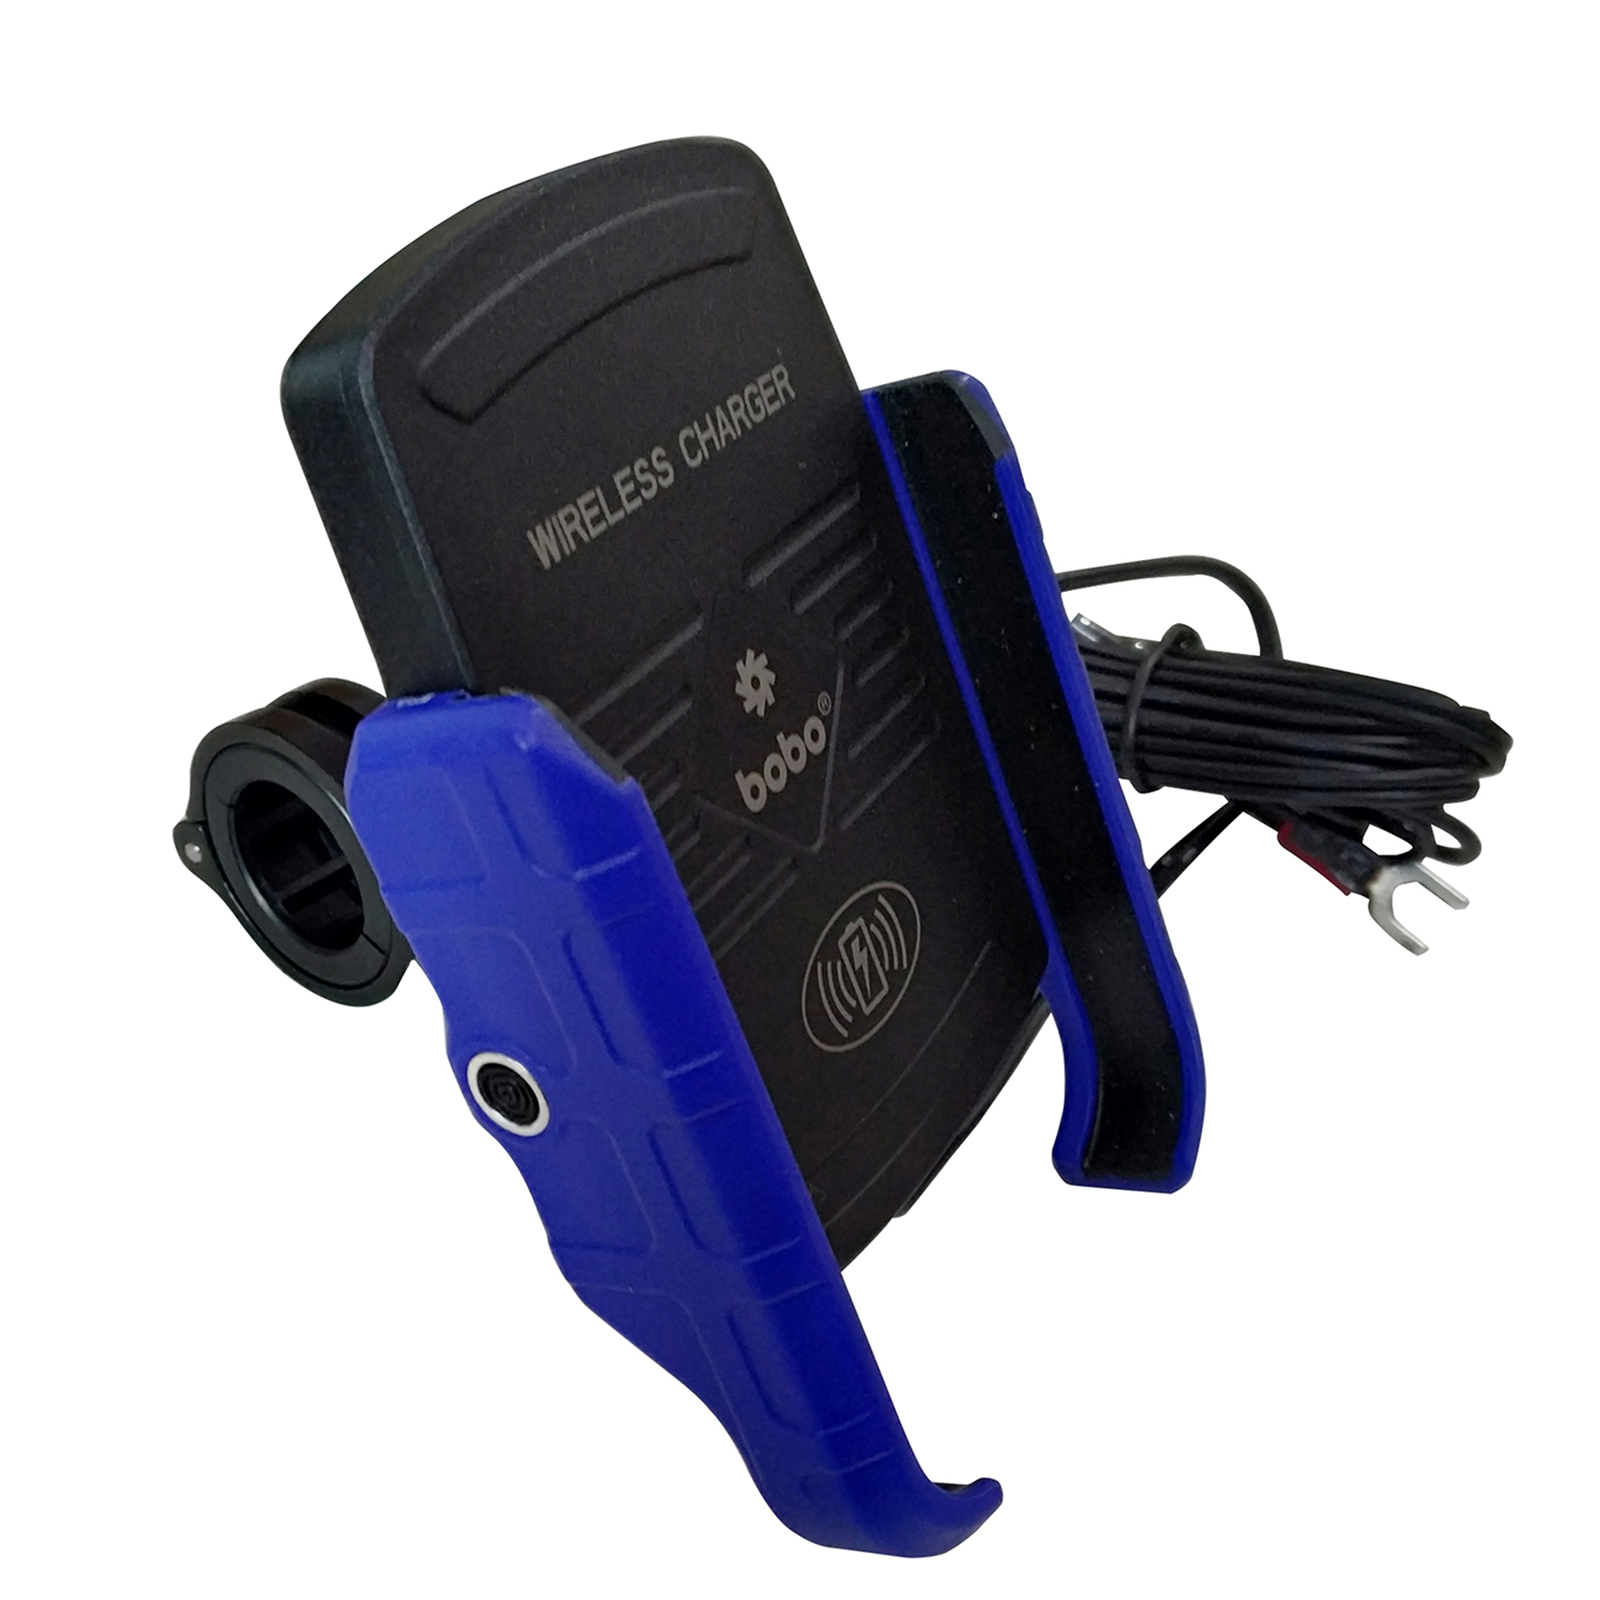 Bobo BM6 Jaw-Grip Mounting Kit For Bike (With Fast 15W Wireless Charger, BB-BM-006-001003, Blue)_1